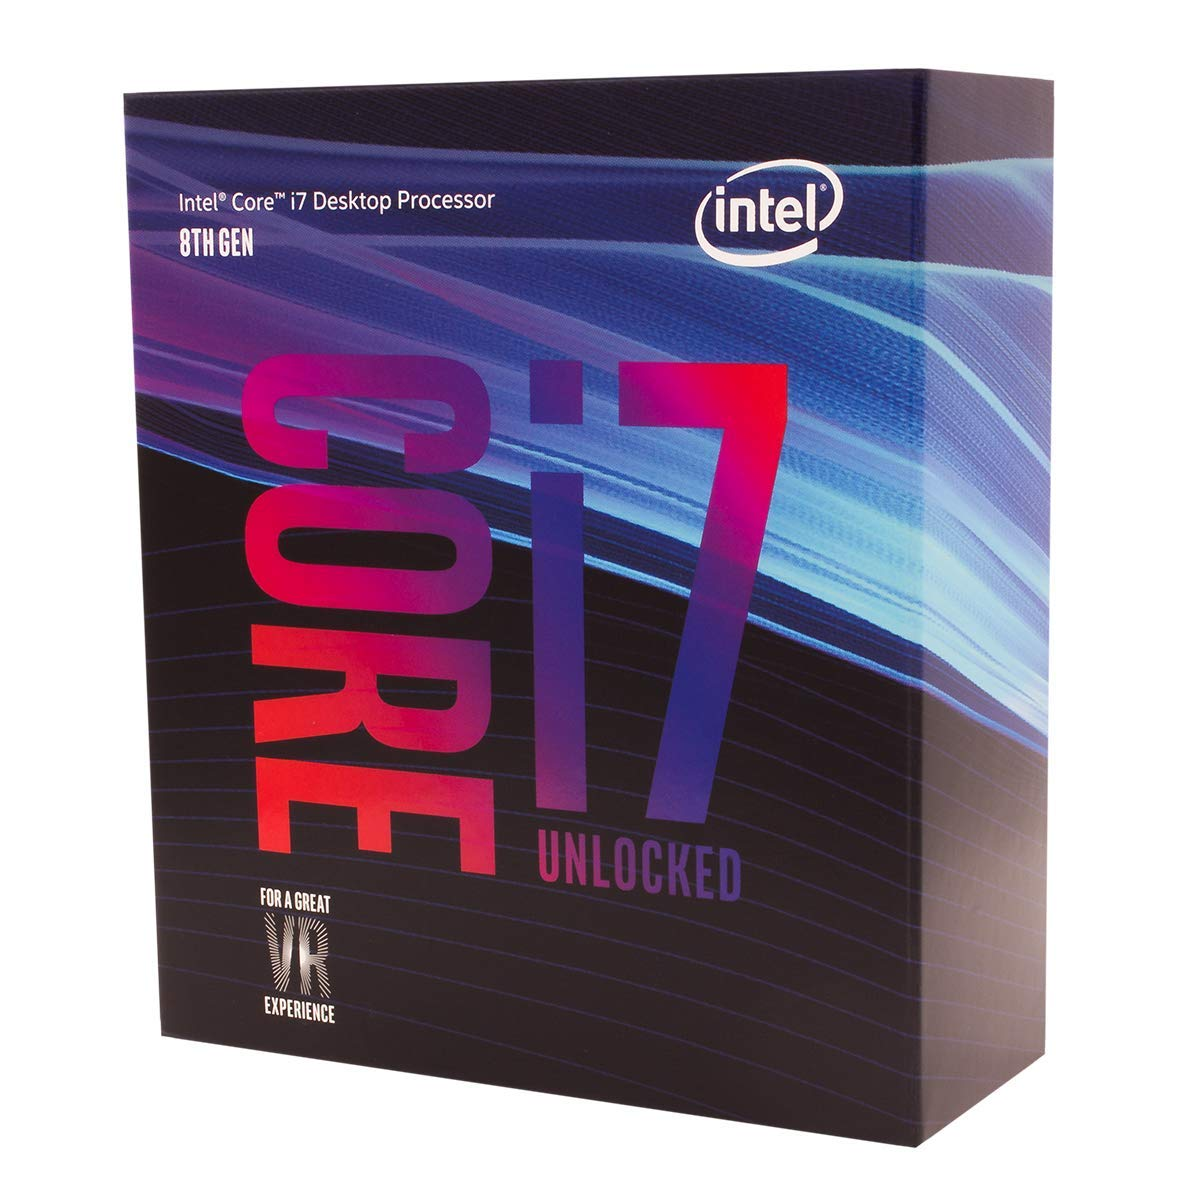 Intel Core i7-8700K 6 Cores up to 4.7GHz Turbo Unlocked LGA1